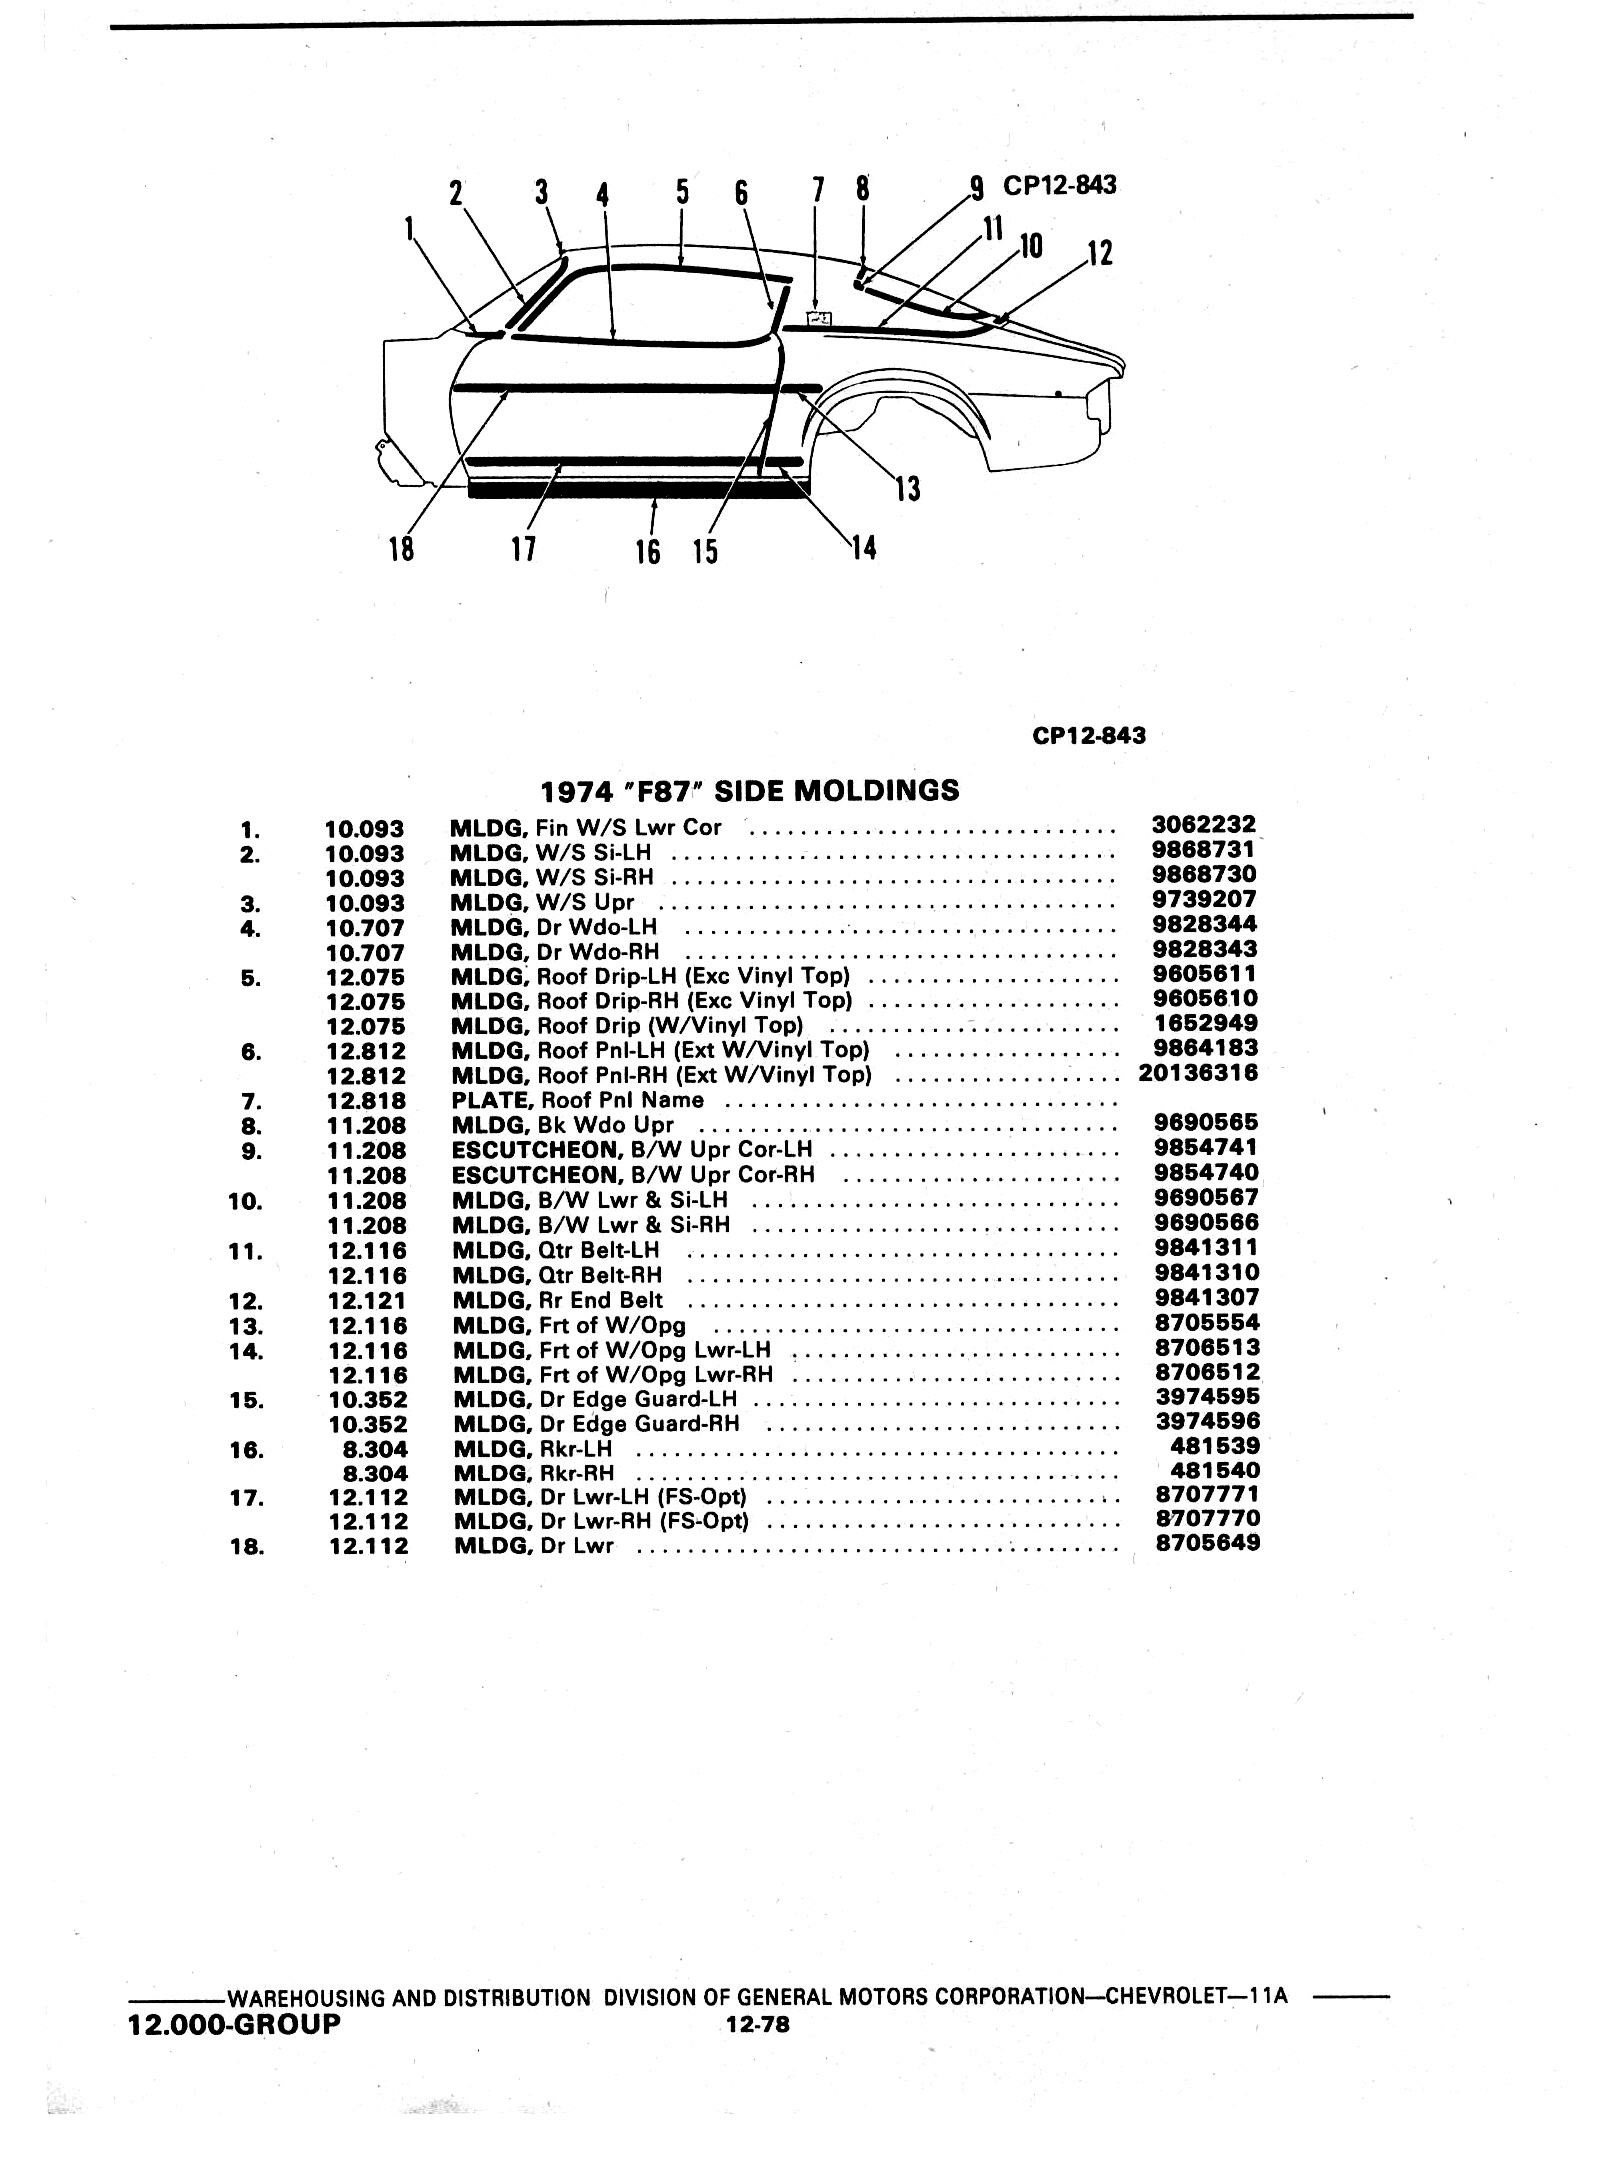 13-1975-chpi-body-moldings_page_080_image_0001